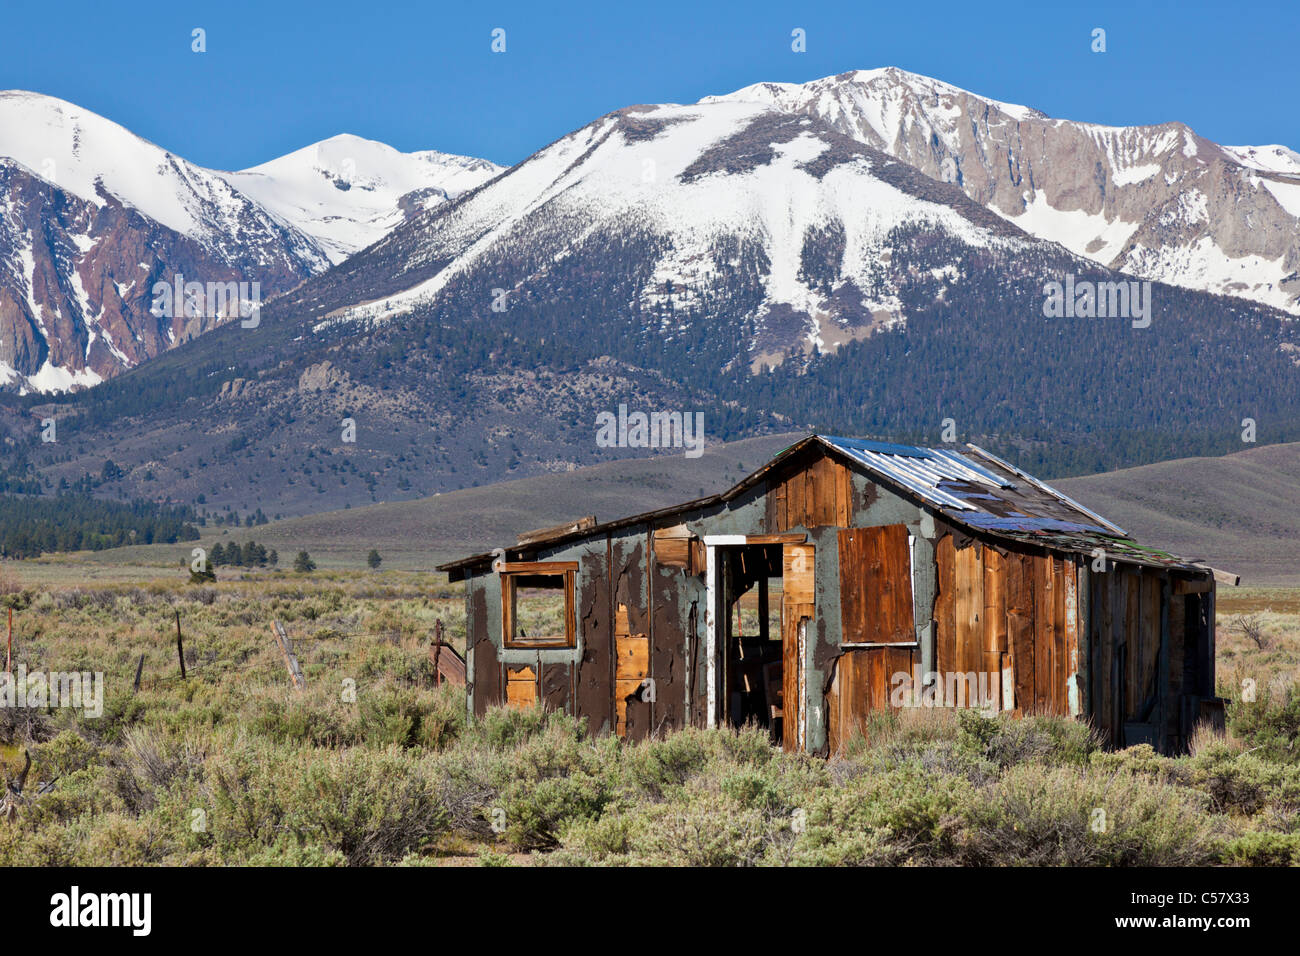 abandoned dilapidated western cabin in the sierra nevada